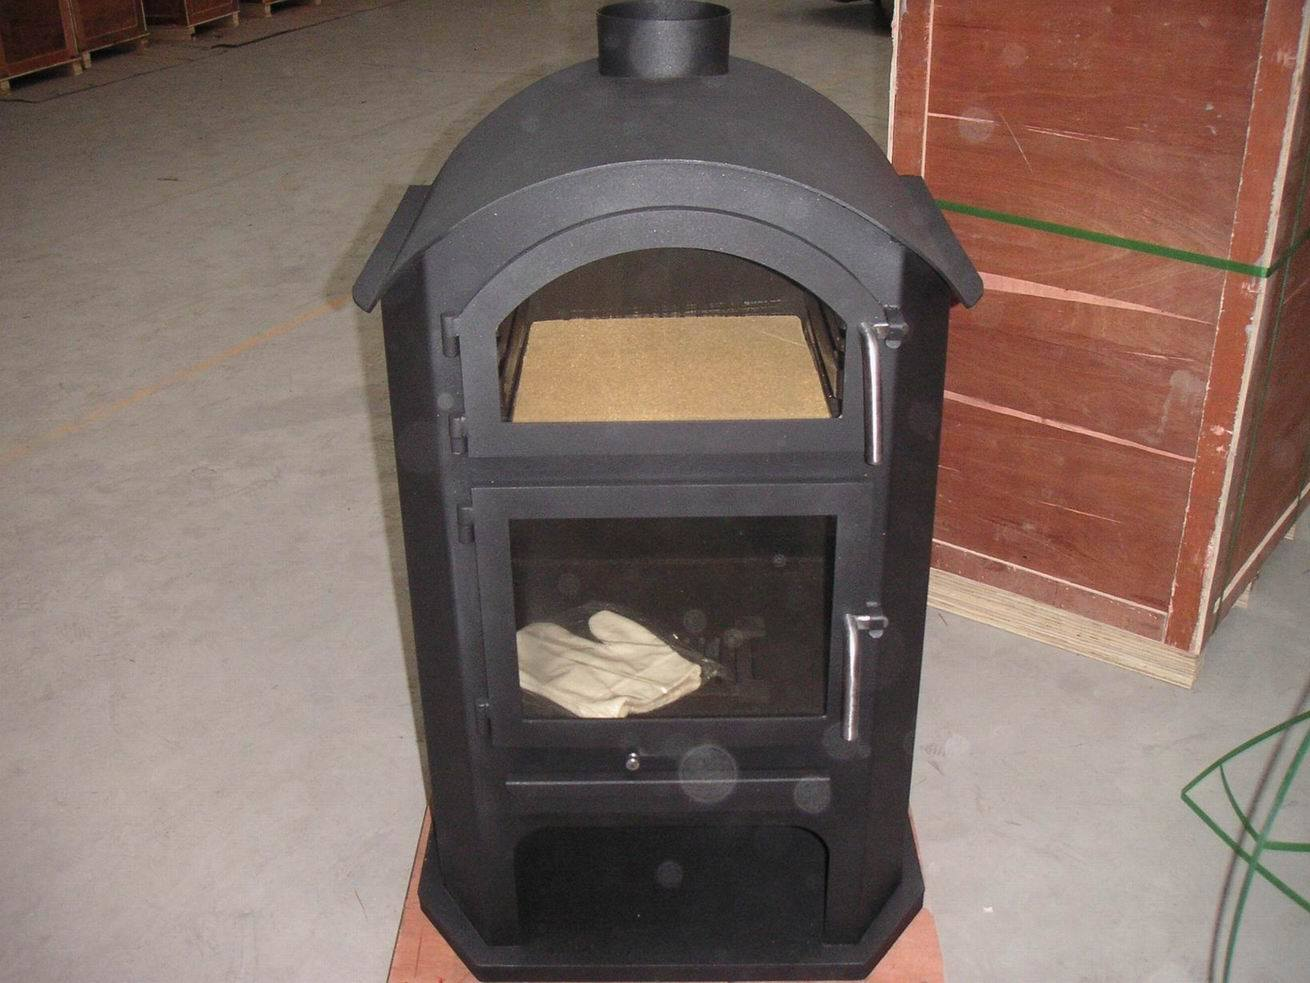 Wood Stove Oven : wood burning stove with oven (KH003) - China Steel Plate Stoves, wood ...